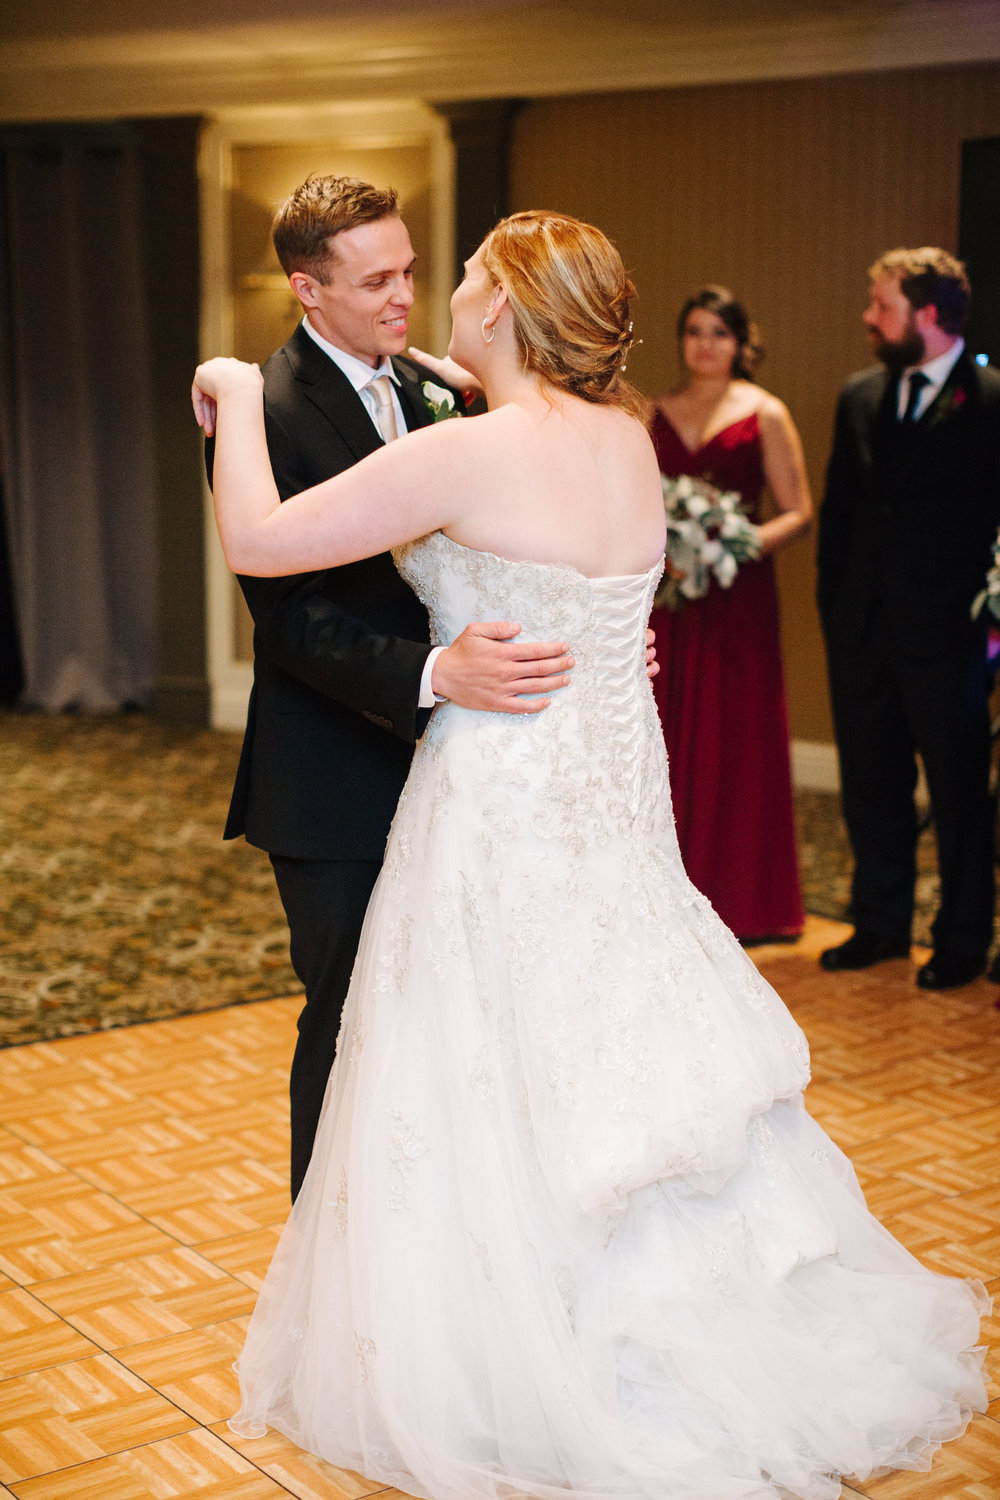 Matthew & Megan - Reception - Jake & Katie Photography_047.jpg